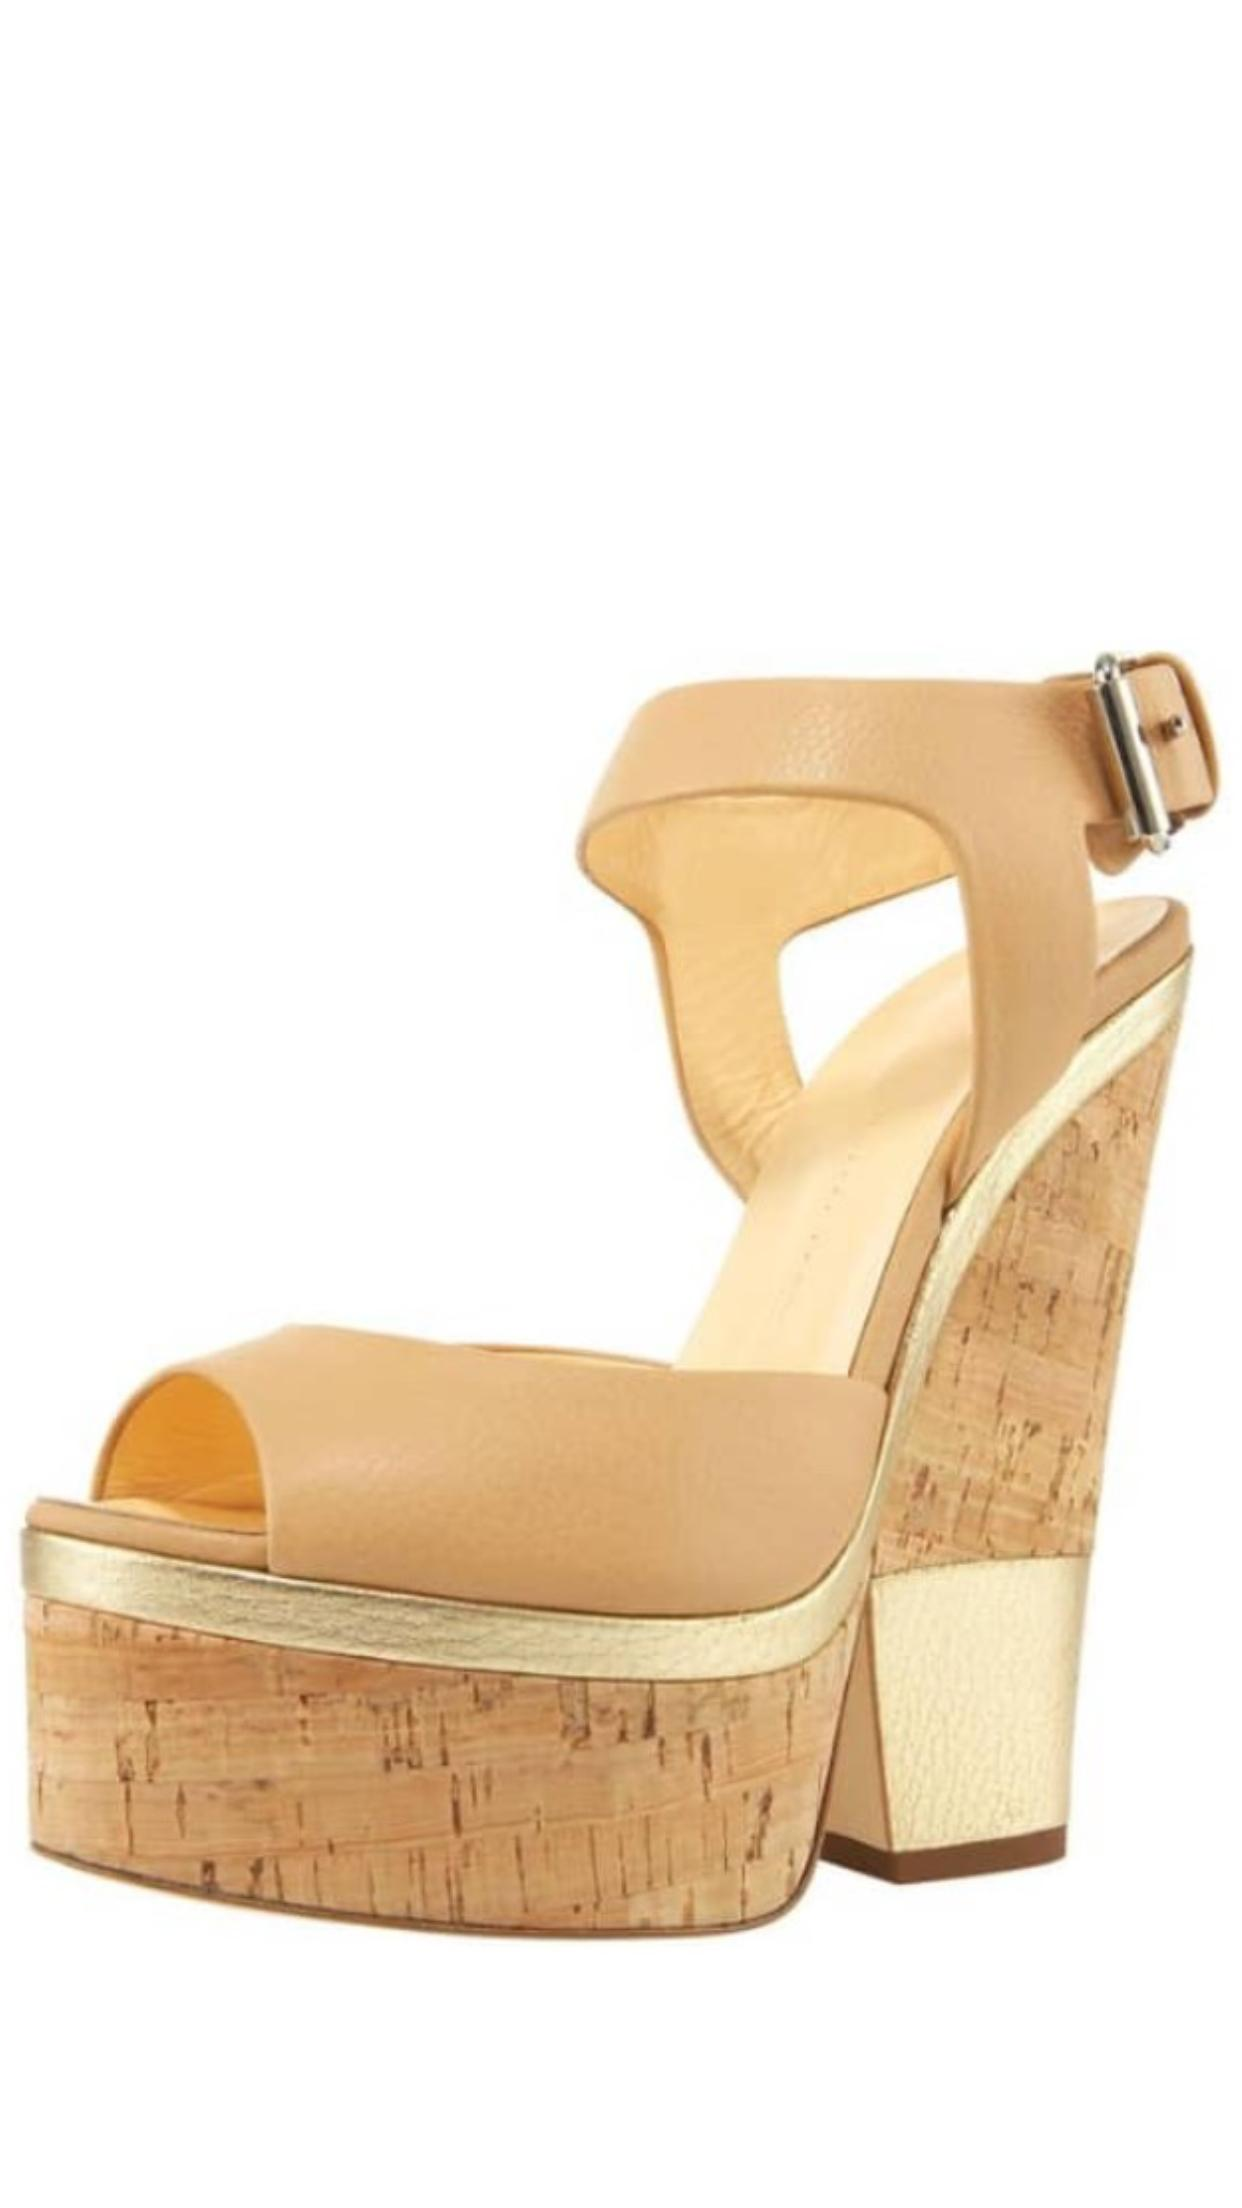 Giuseppe Zanotti Nude Natural Leather Cork Wedge Sandals Platforms Size EU 40 (Approx. US 10) Regular (M, B)